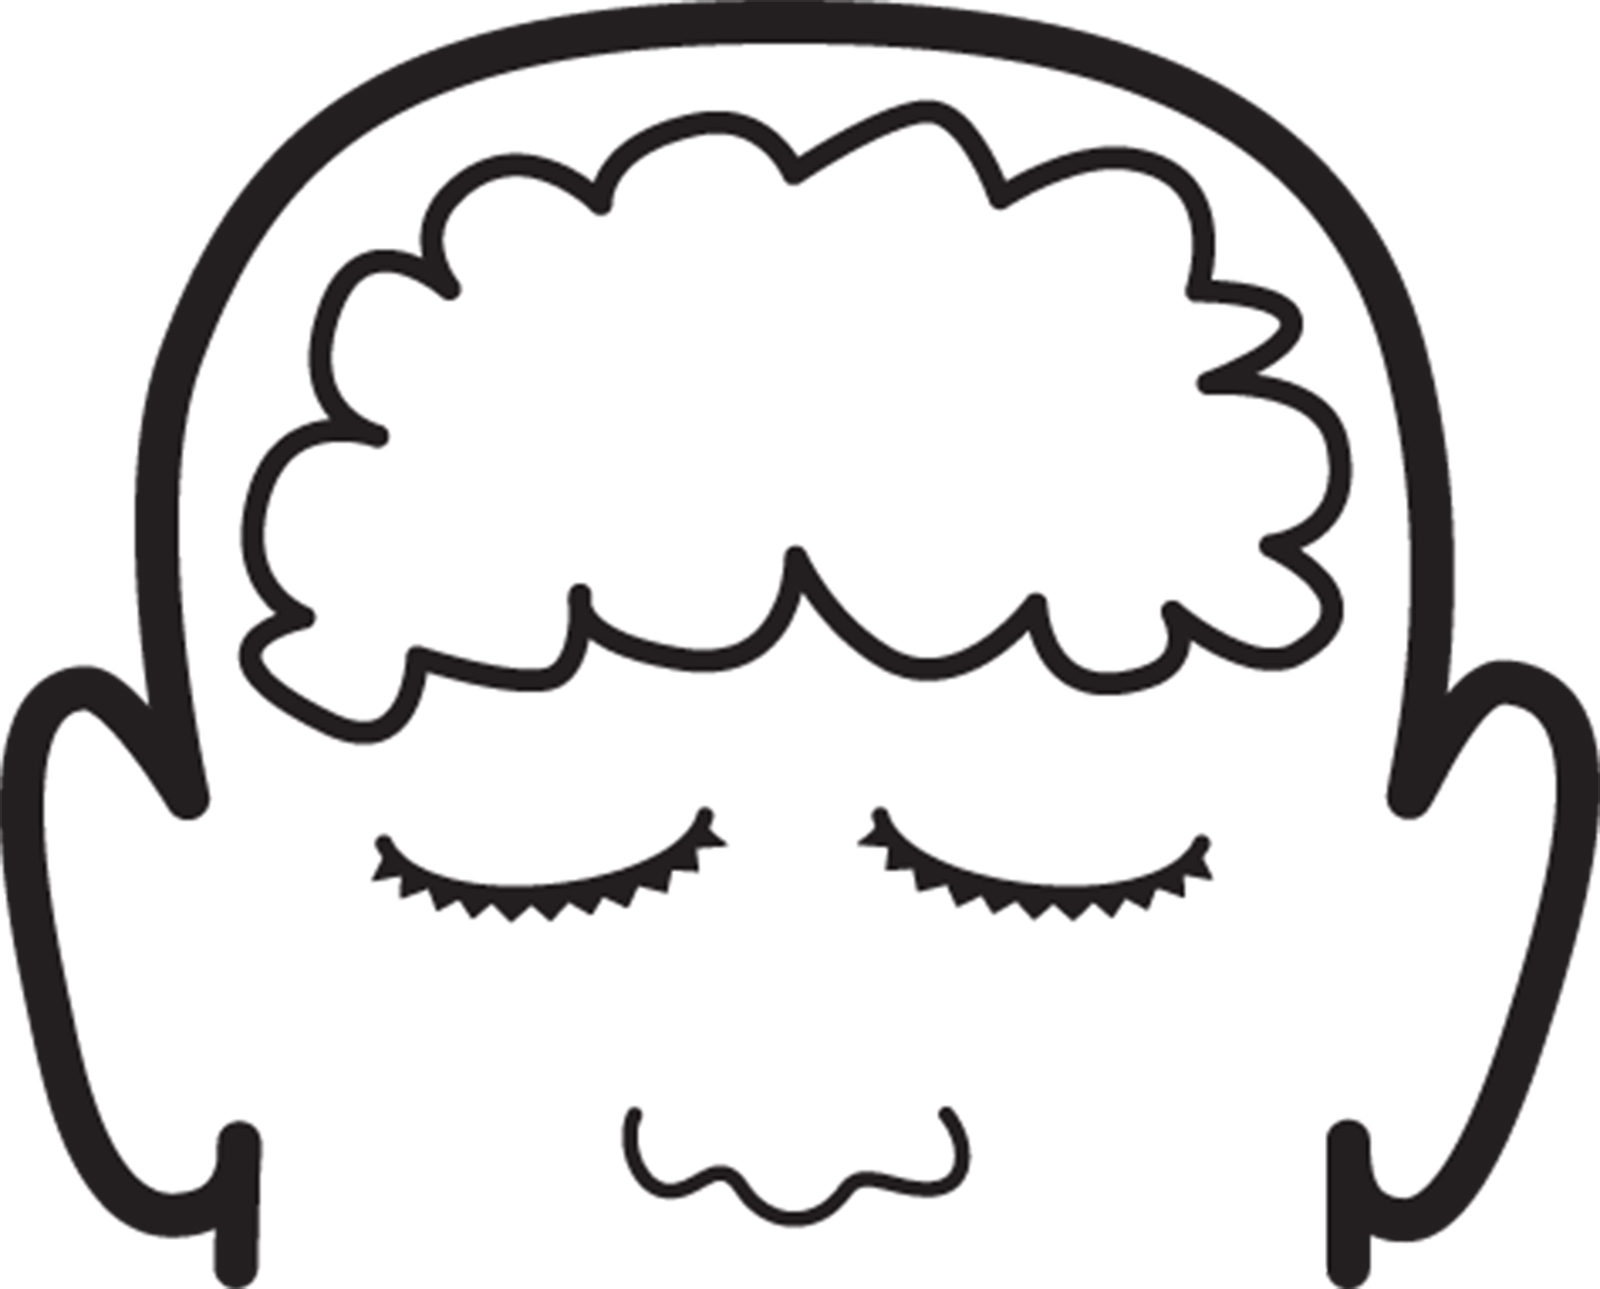 Black outline of figure with brain clipart clipart library download Human Brain Clipart   Free download best Human Brain Clipart on ... clipart library download